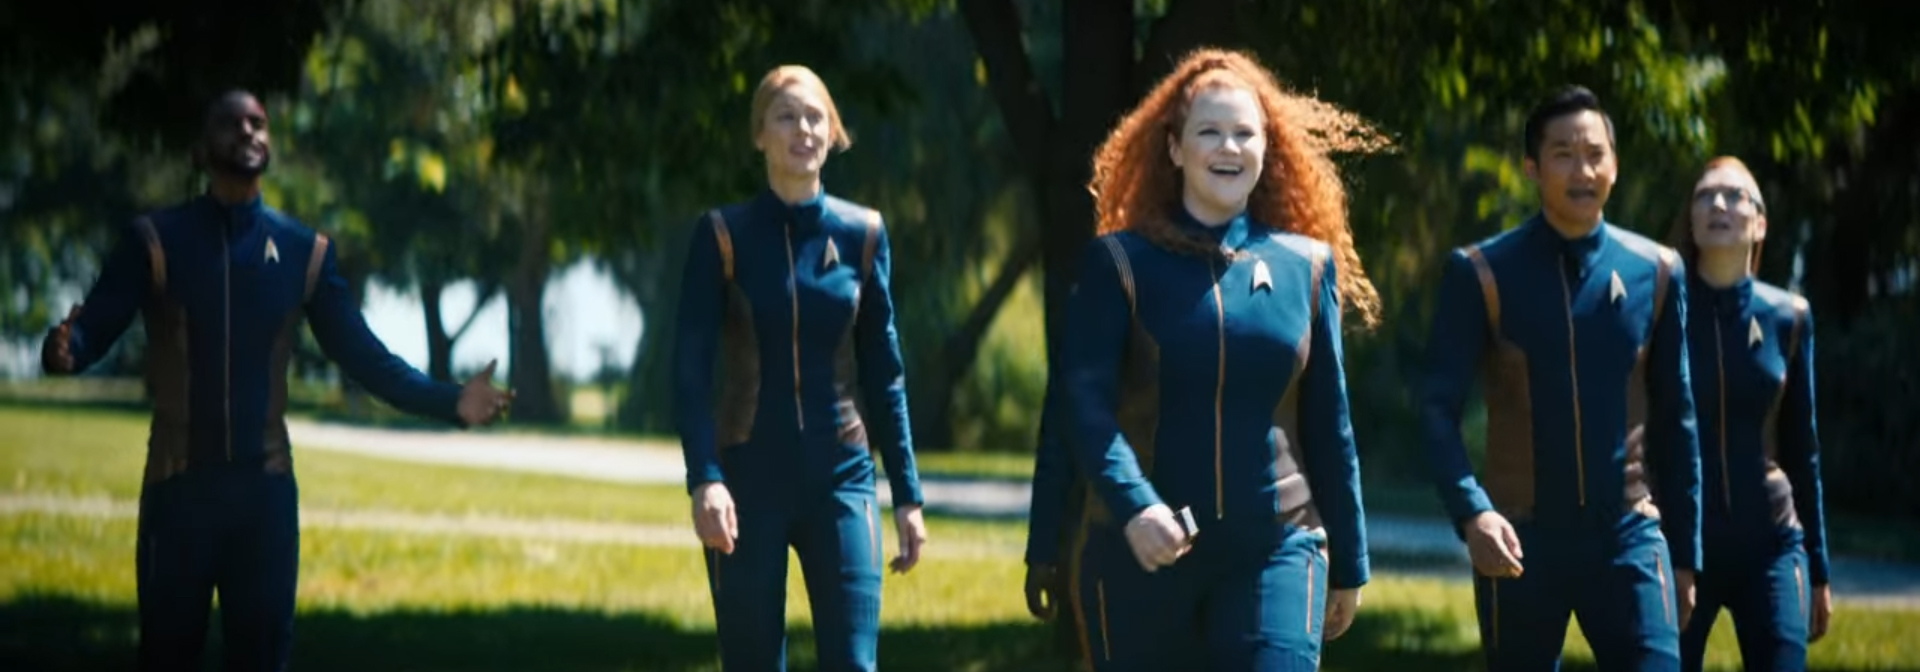 Star Trek Discovery: People of Earth. Image Credit: CBS Studios.